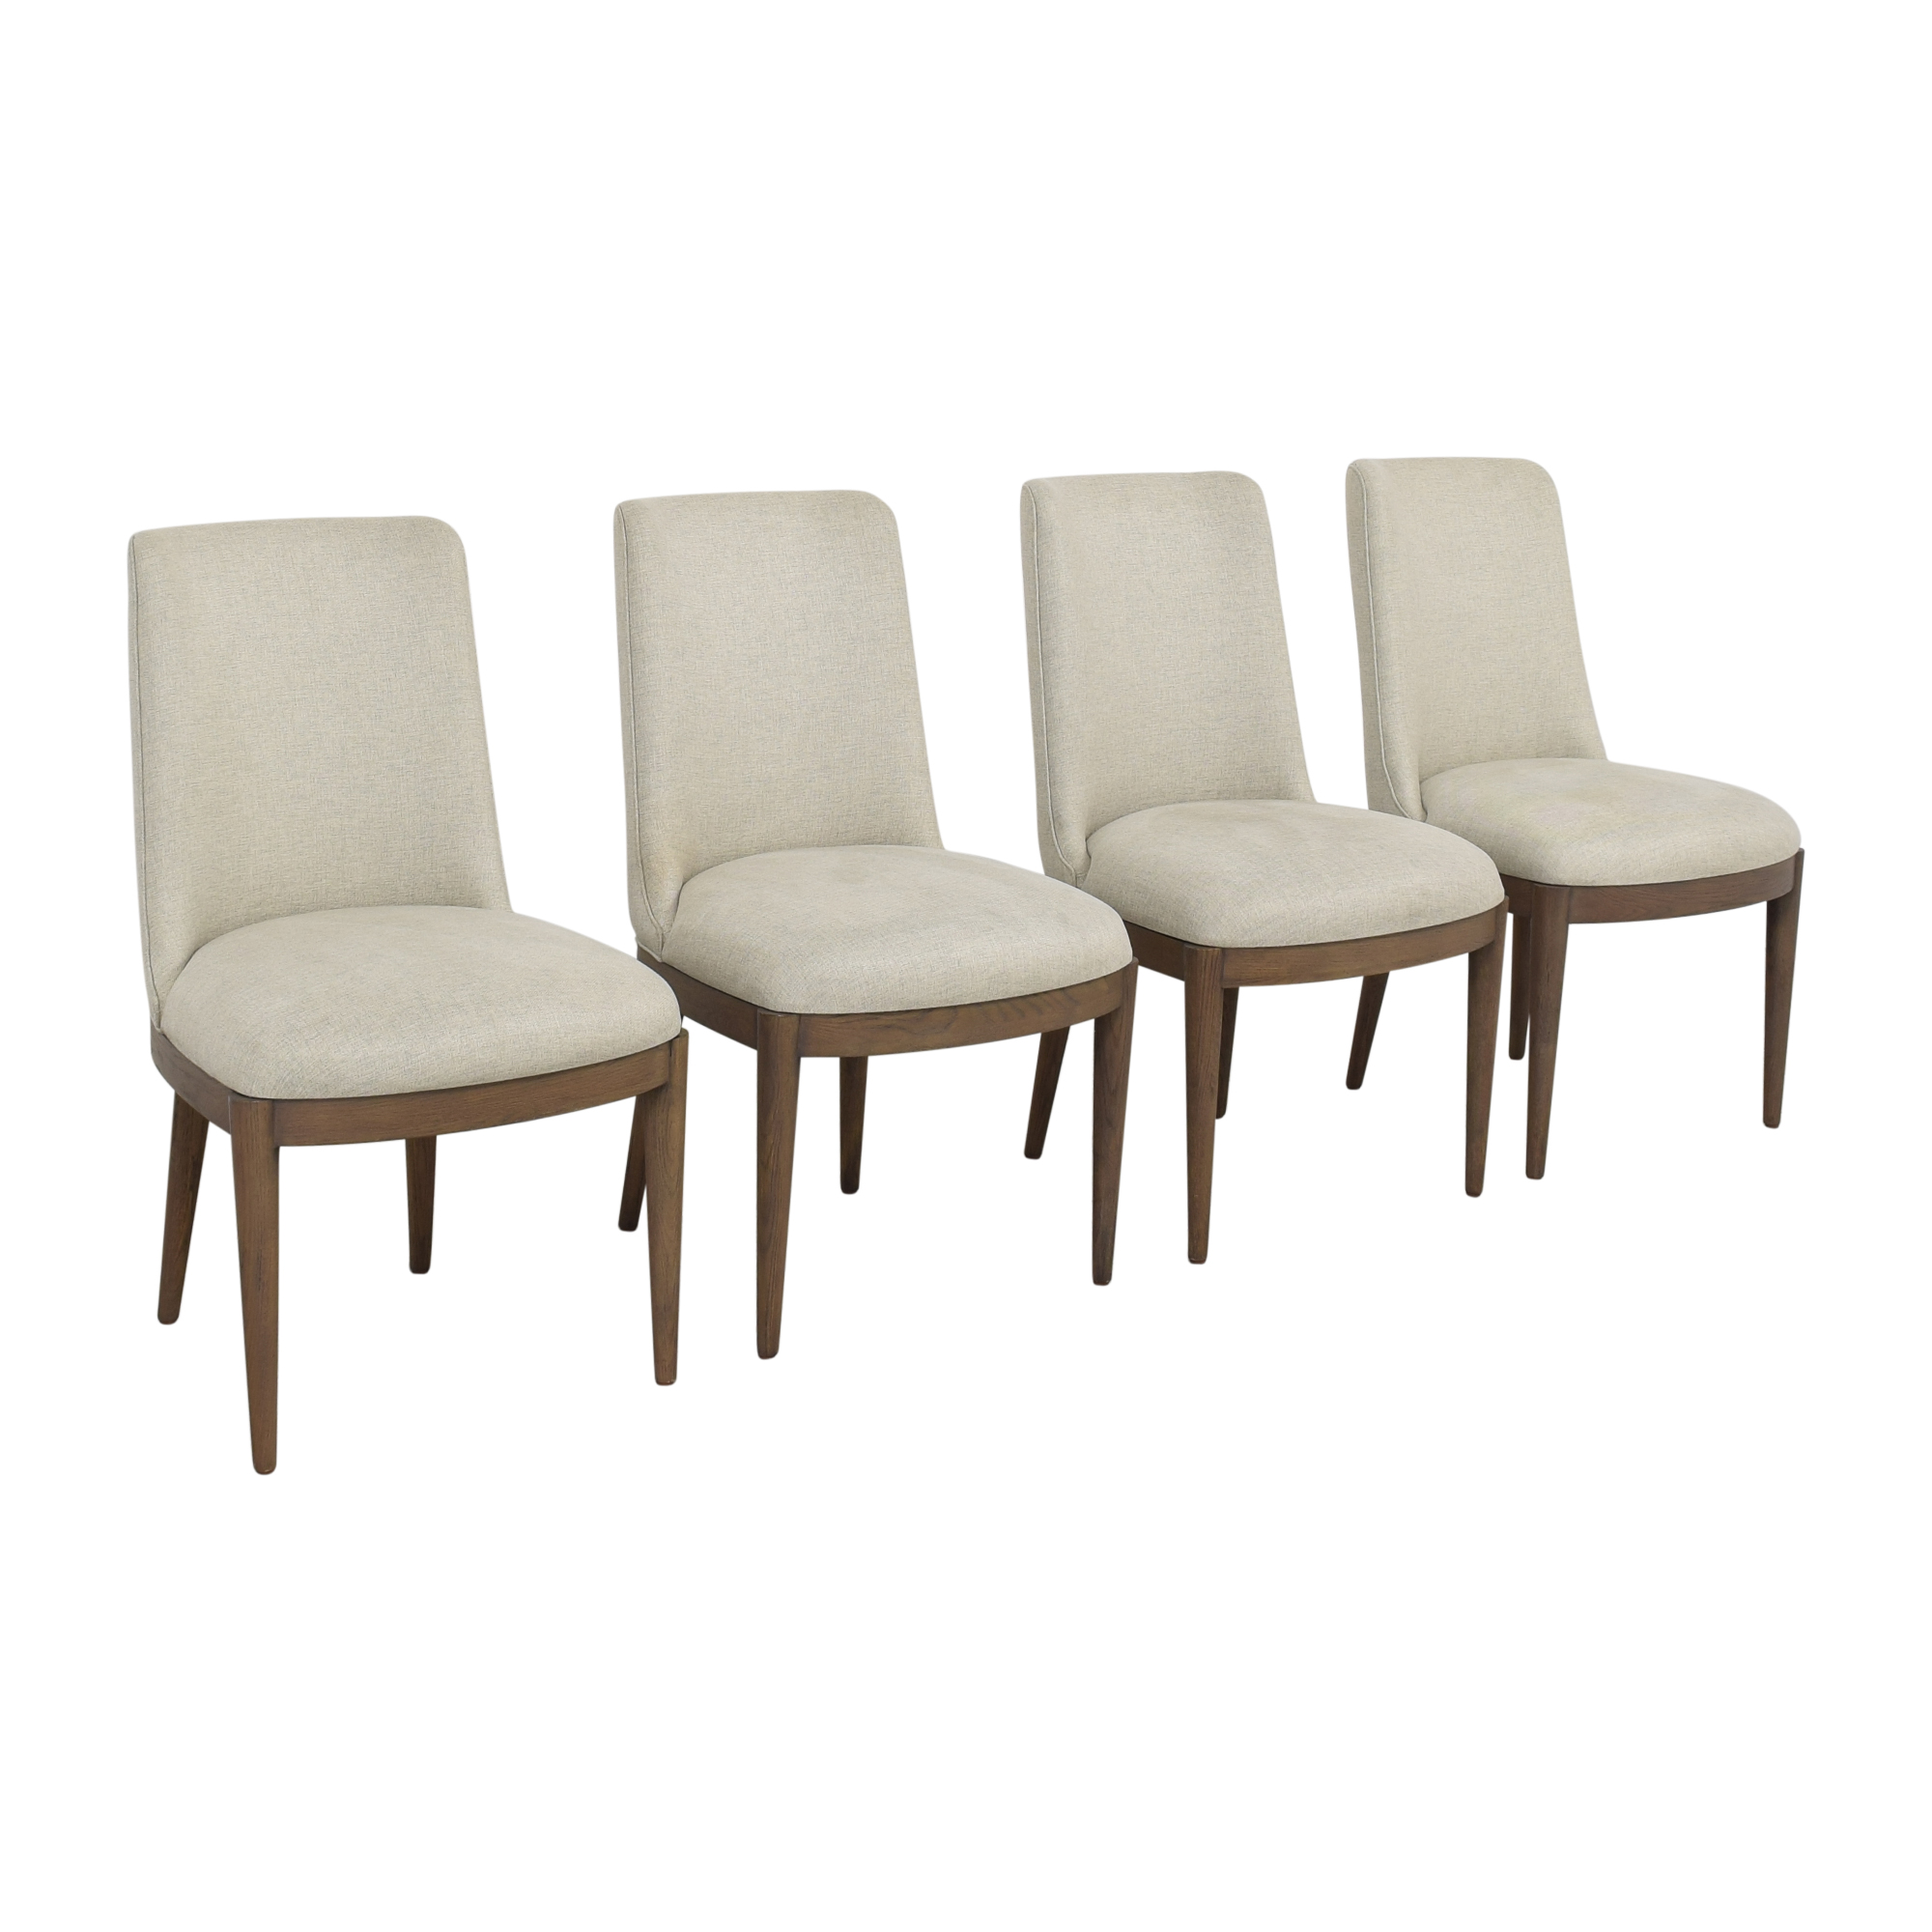 Caracole Caracole Metro Dining Chairs second hand